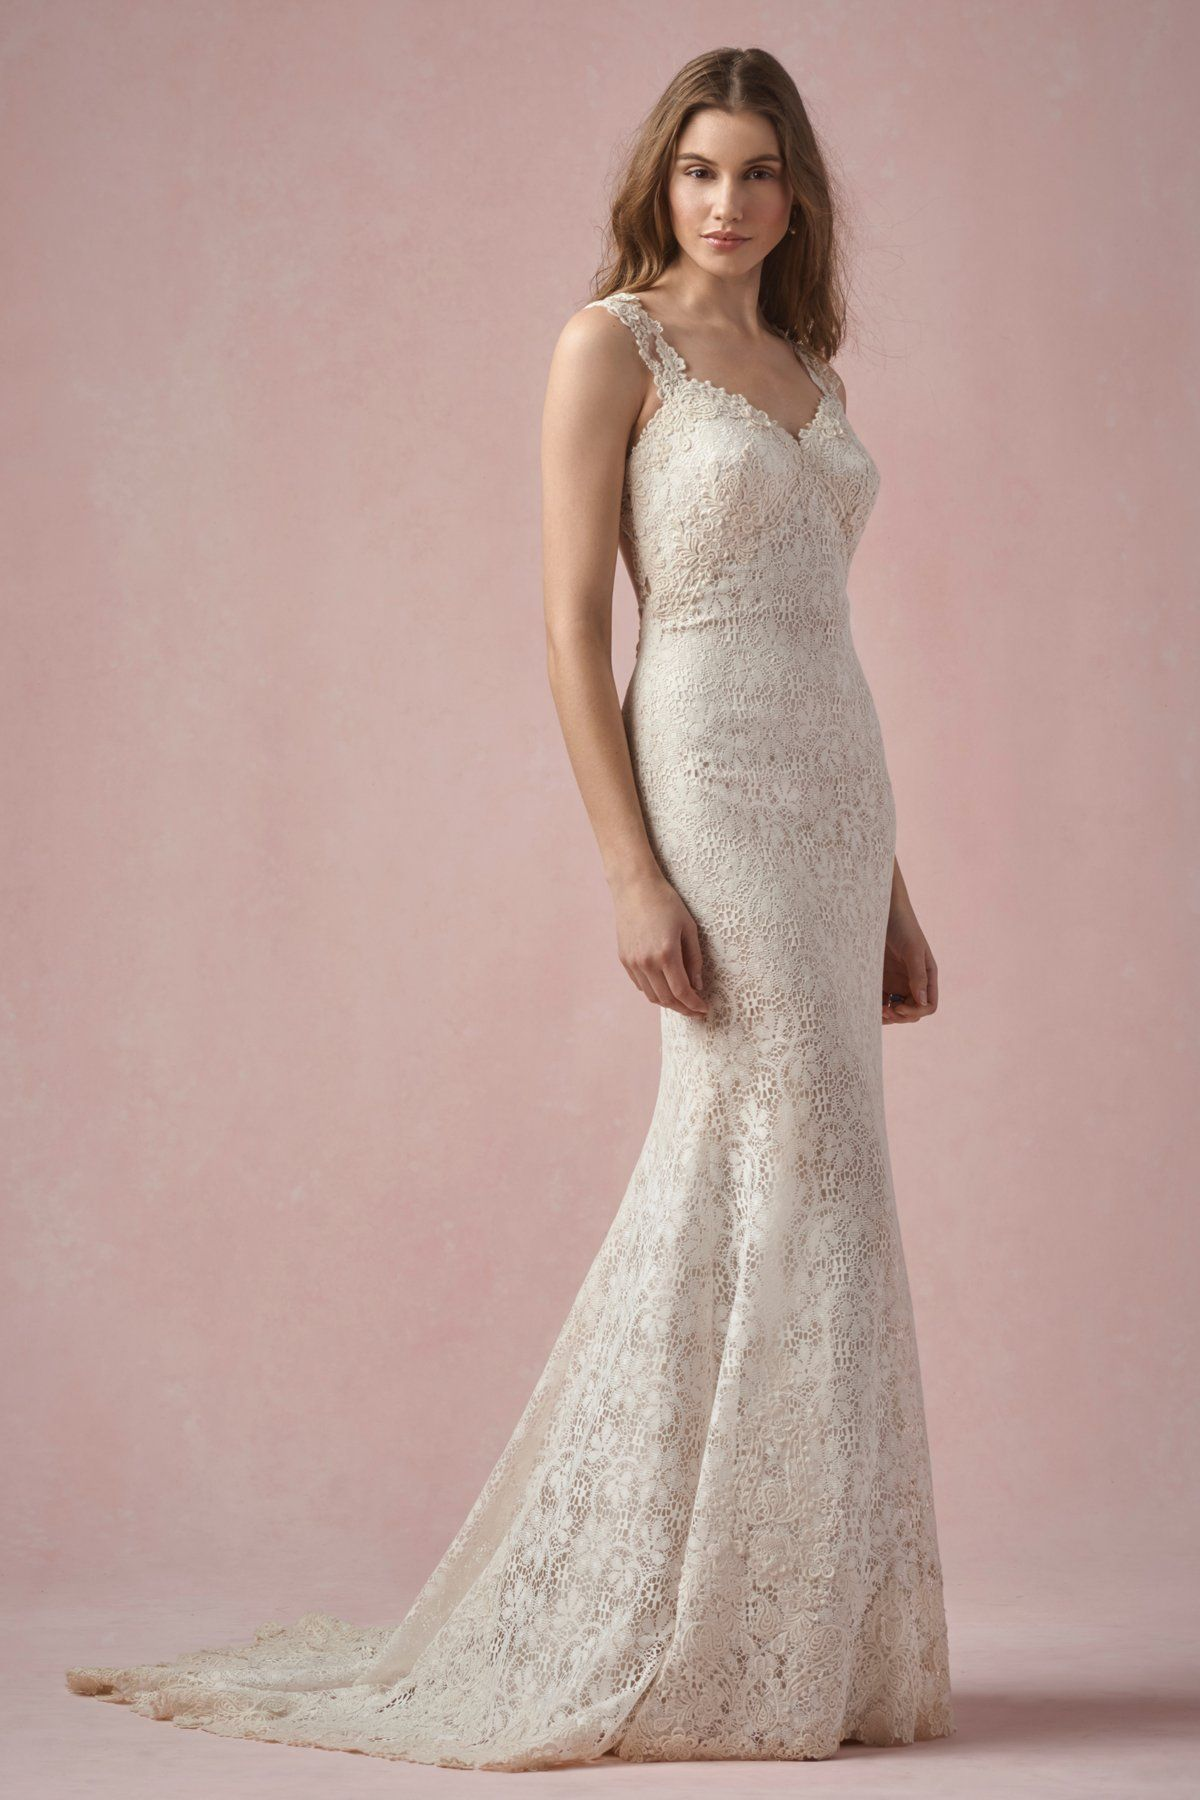 30+ Willowby watters wedding dresses ideas in 2021